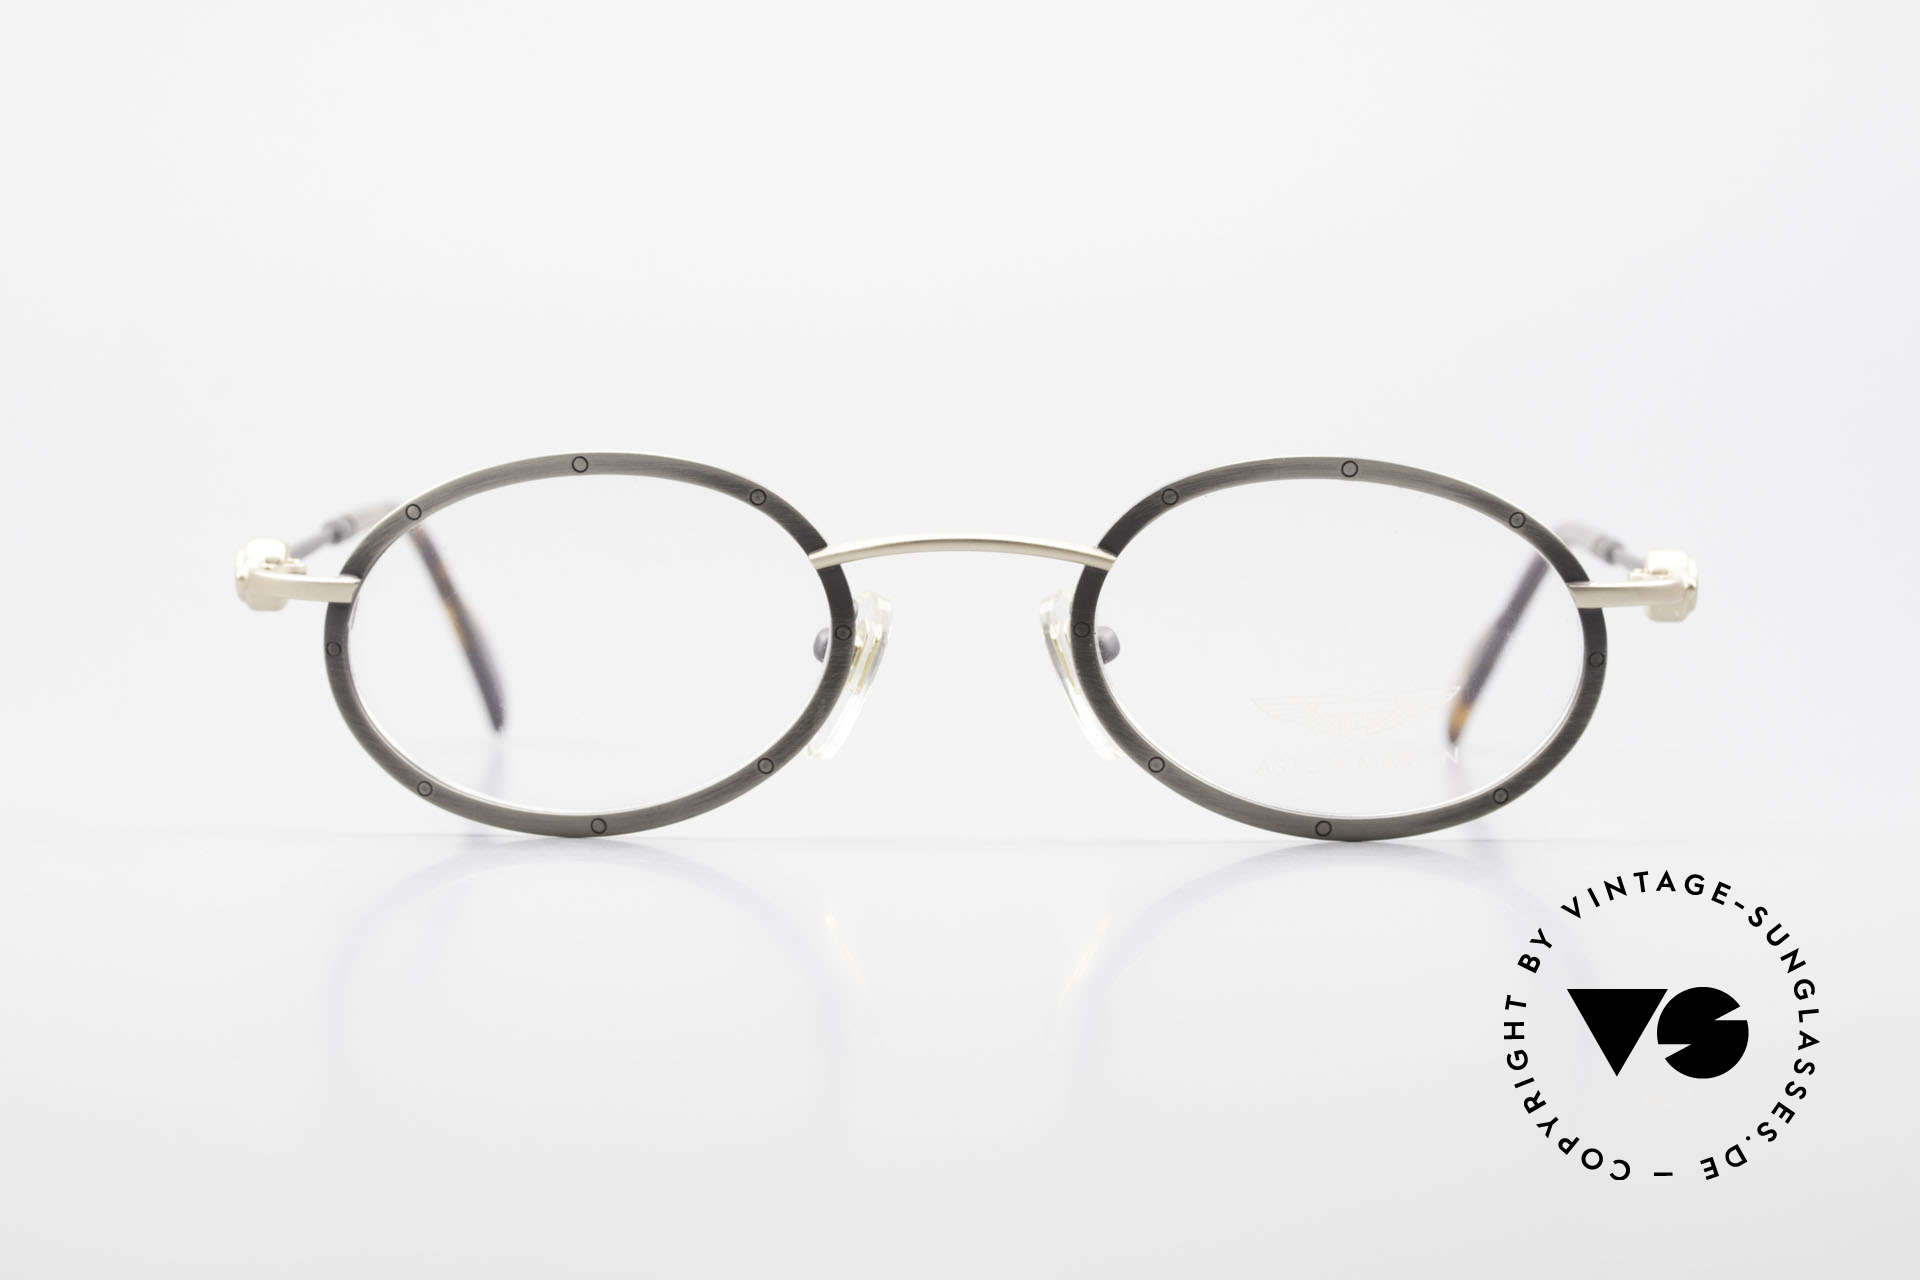 Aston Martin AM34 Oval Vintage Frame James Bond, accessory for the luxury British sports cars; just noble!, Made for Men